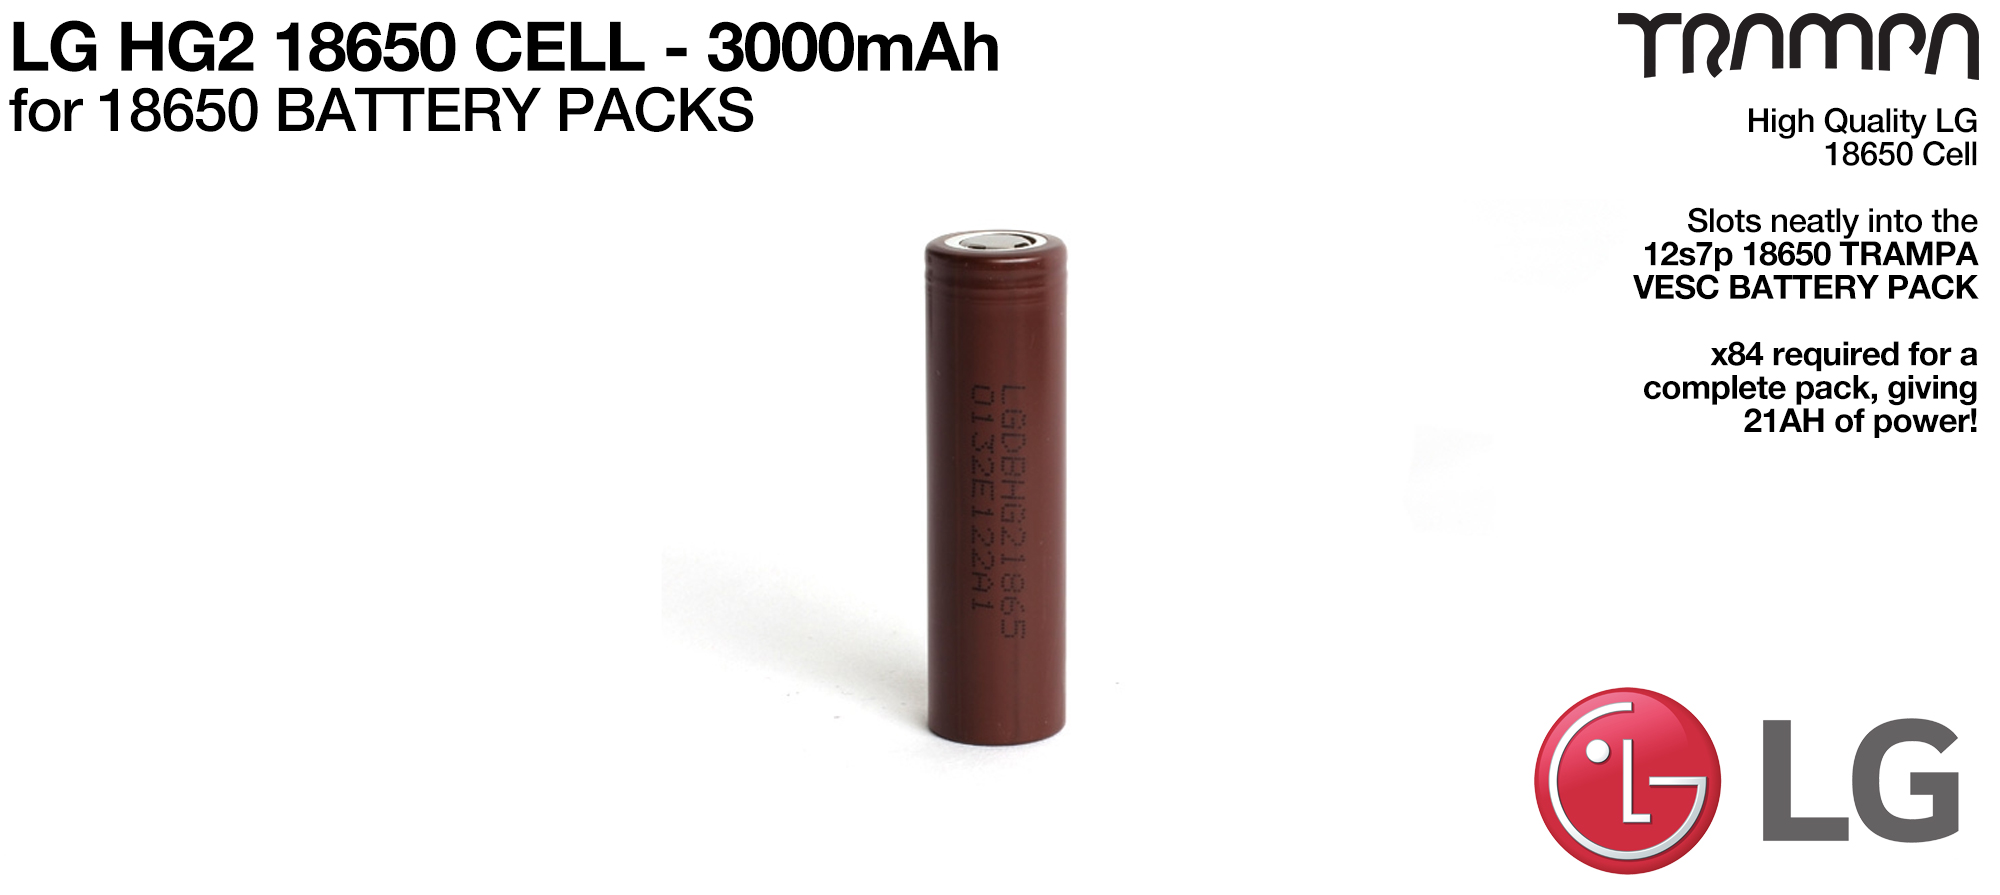 LG HG2 18650 Cells 3000mAh - UK CUSTOMERS ONLY